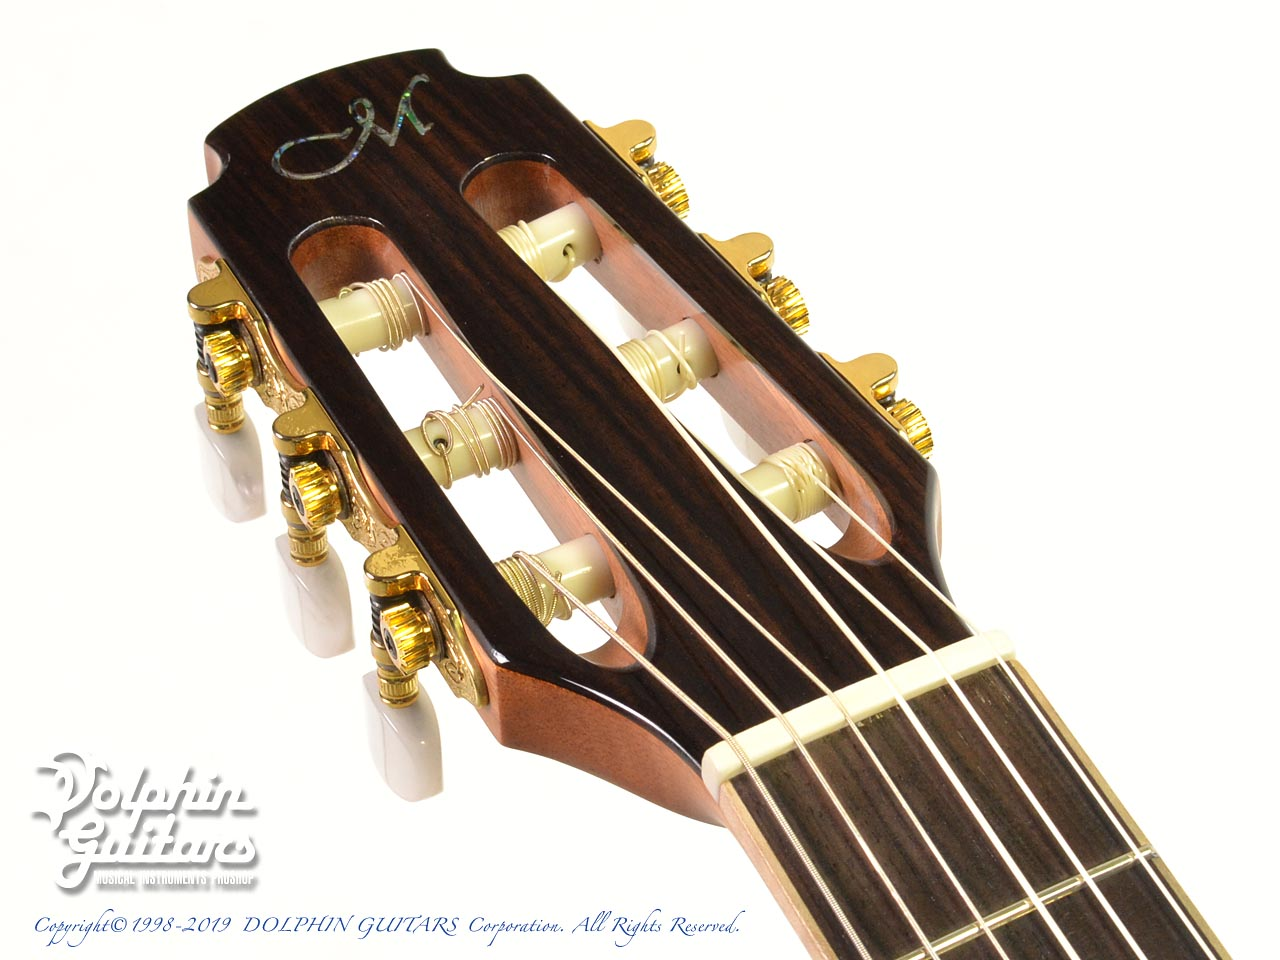 Maestro Guitars: Crossover Series Vera IR CSB GY (Indian Rosewood) (6)